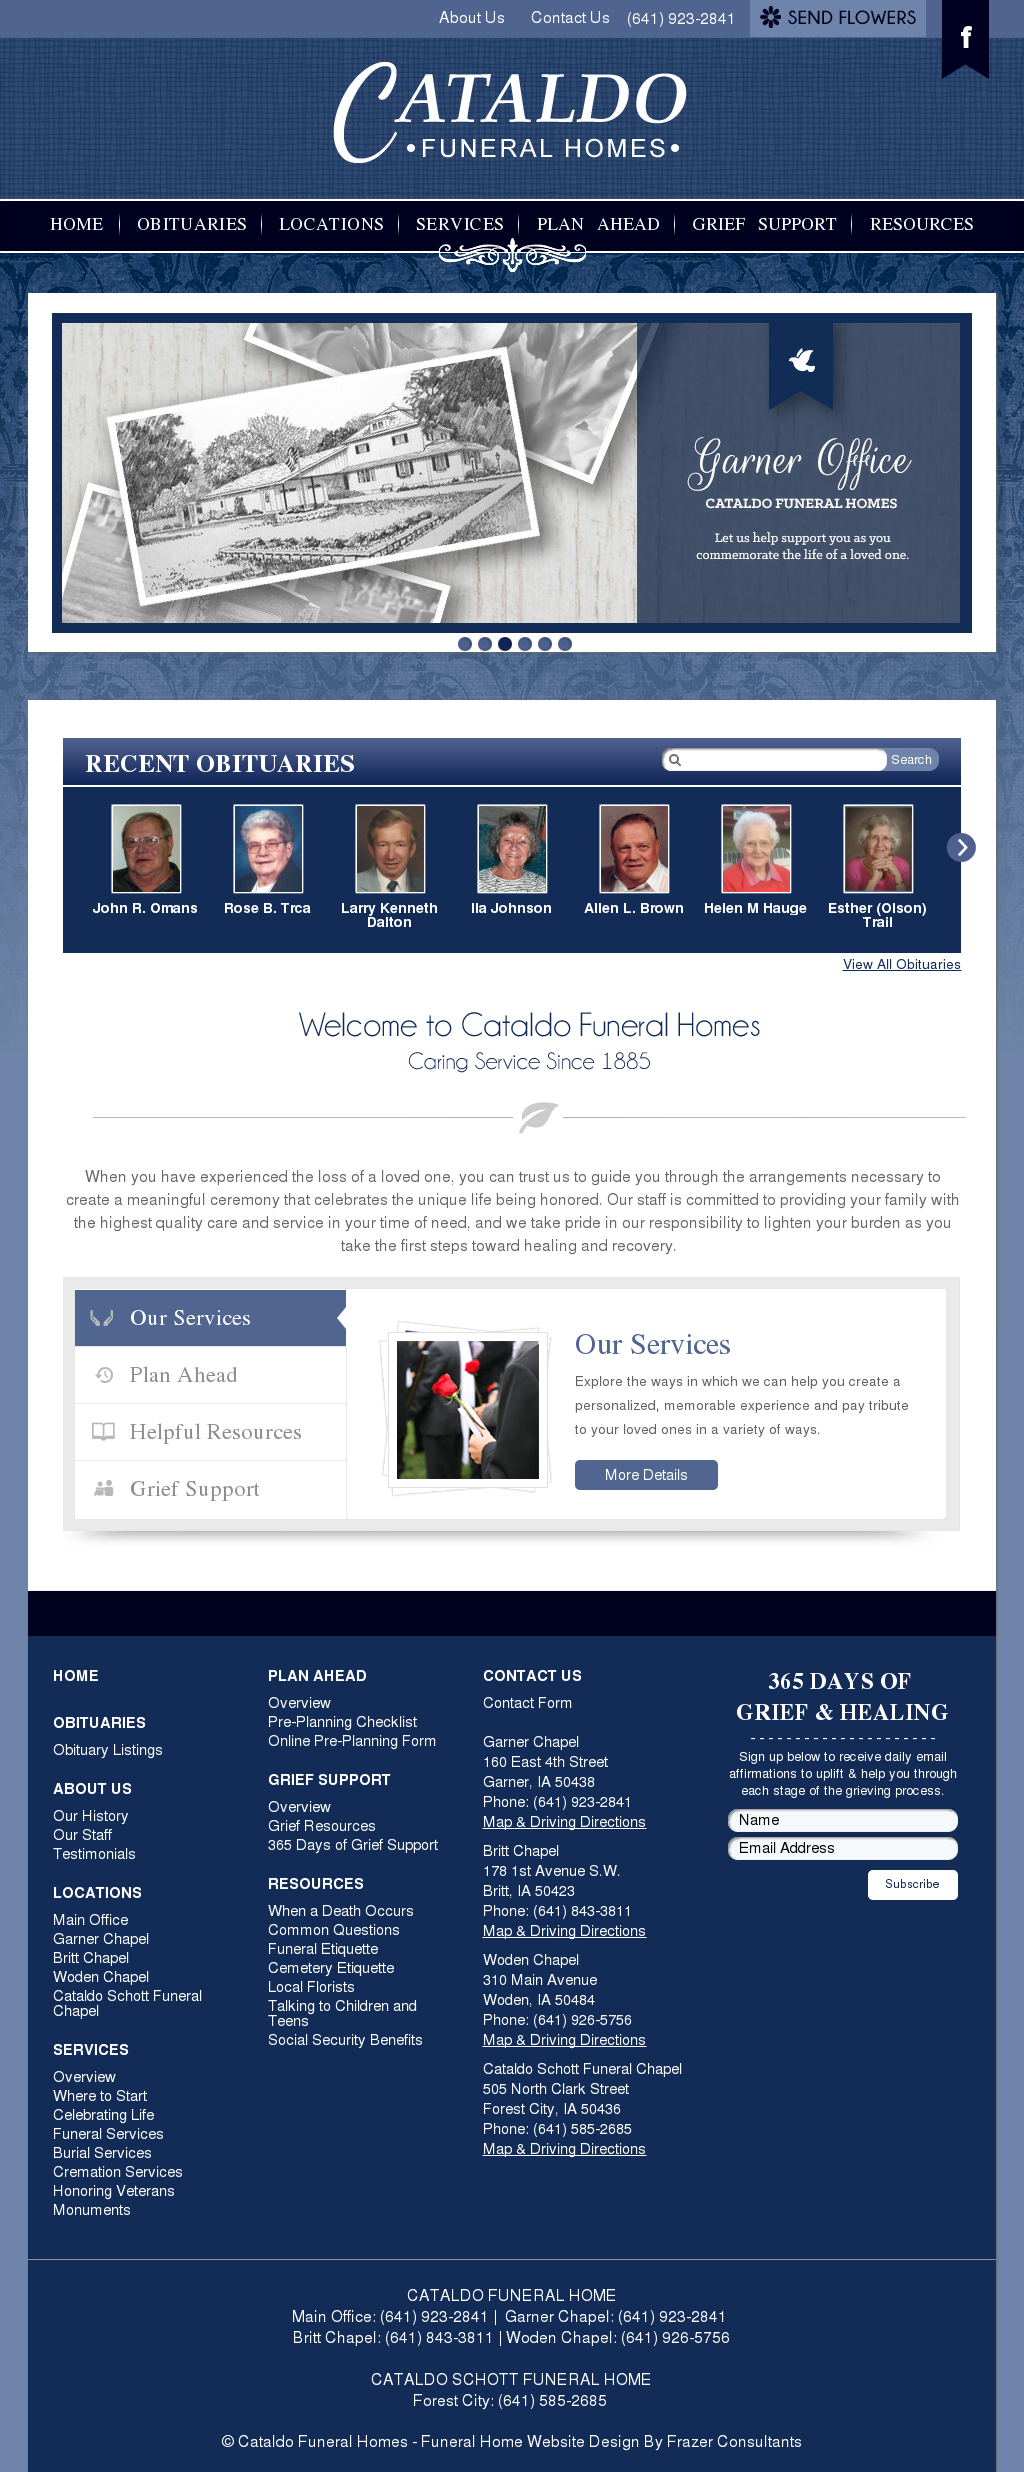 Cataldo Funeral Home Competitors, Revenue and Employees